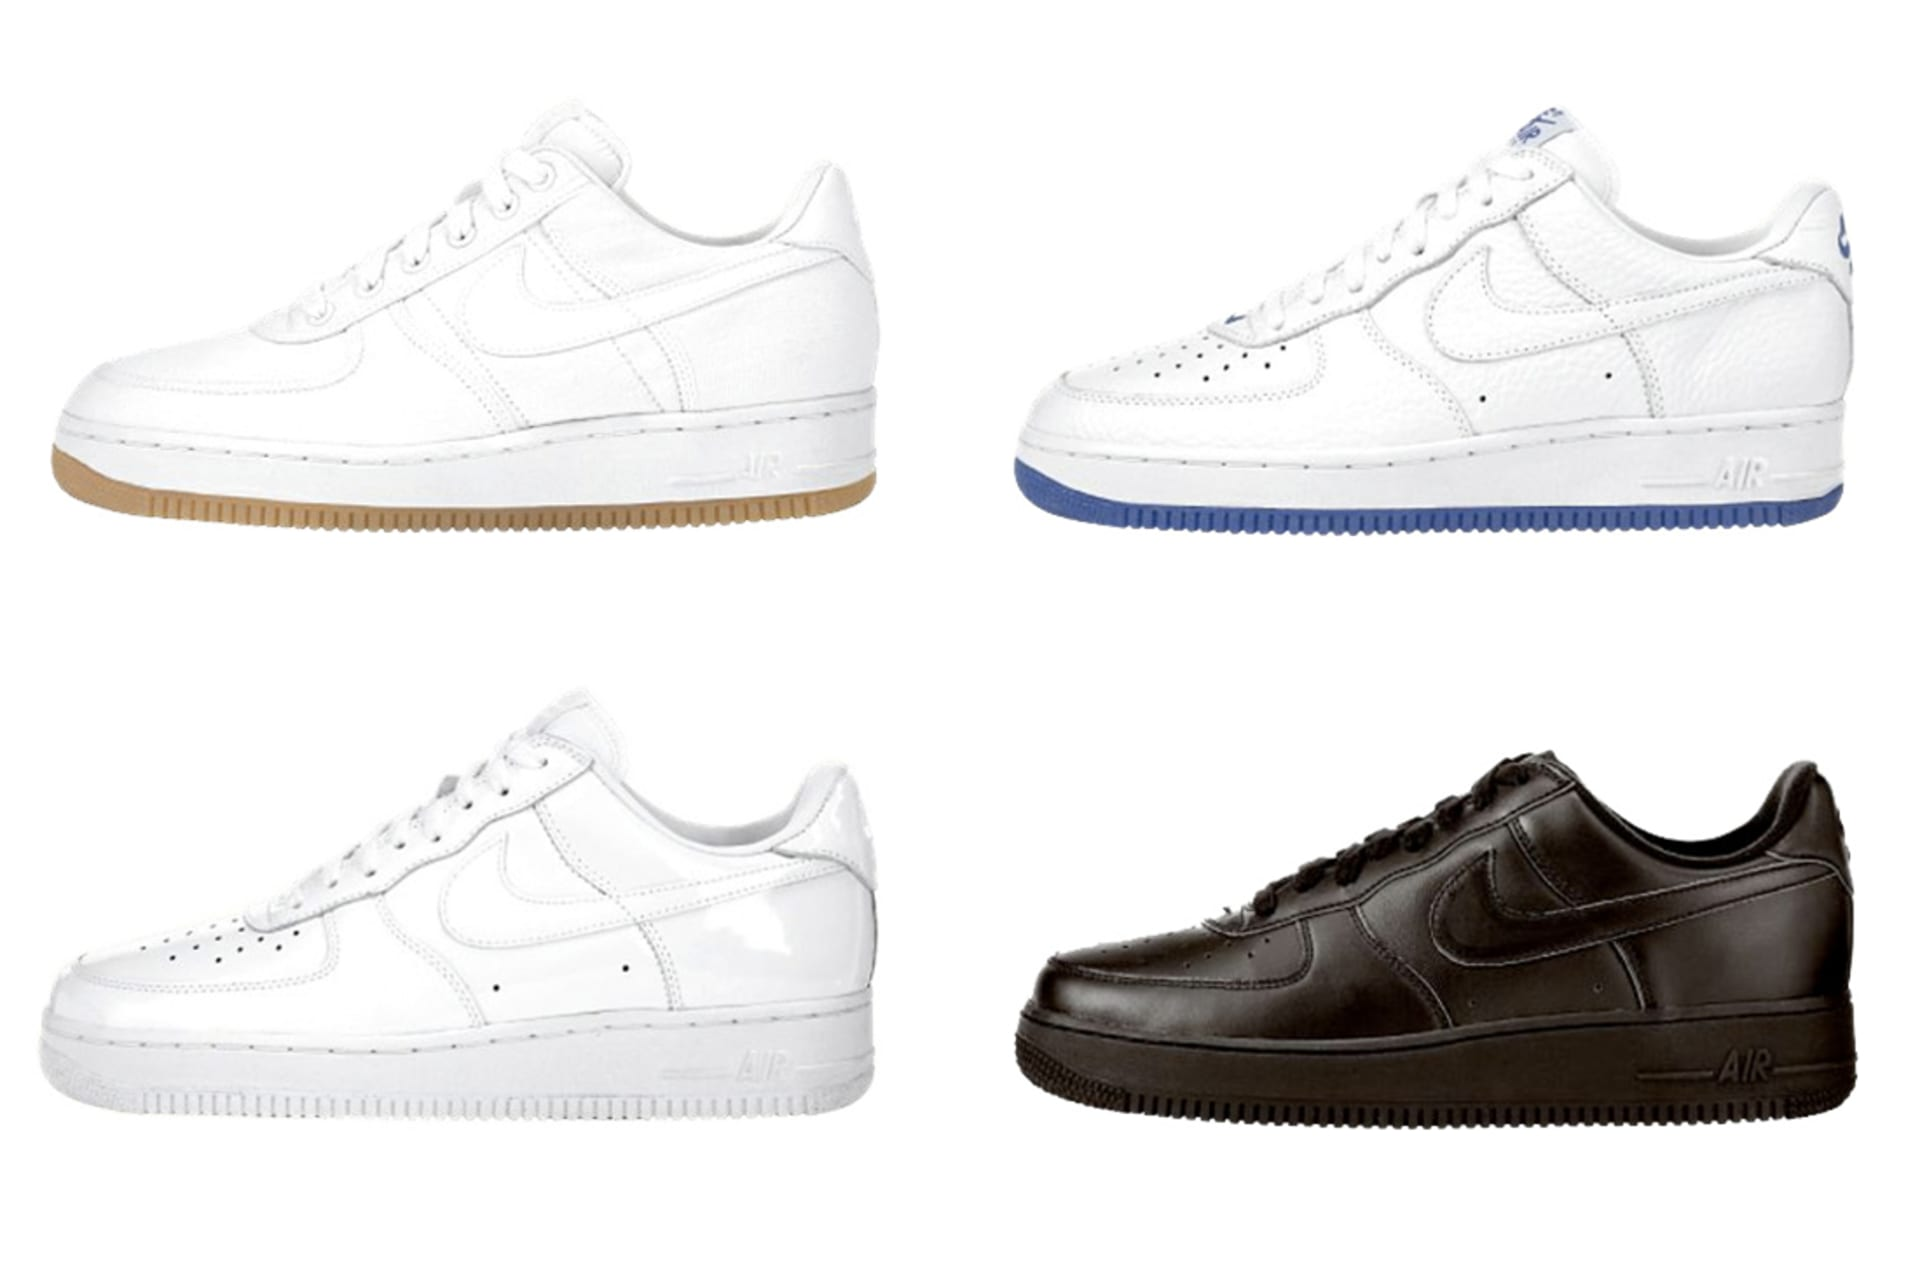 new arrival d644c d86e4 1996 Nike Air Force 1